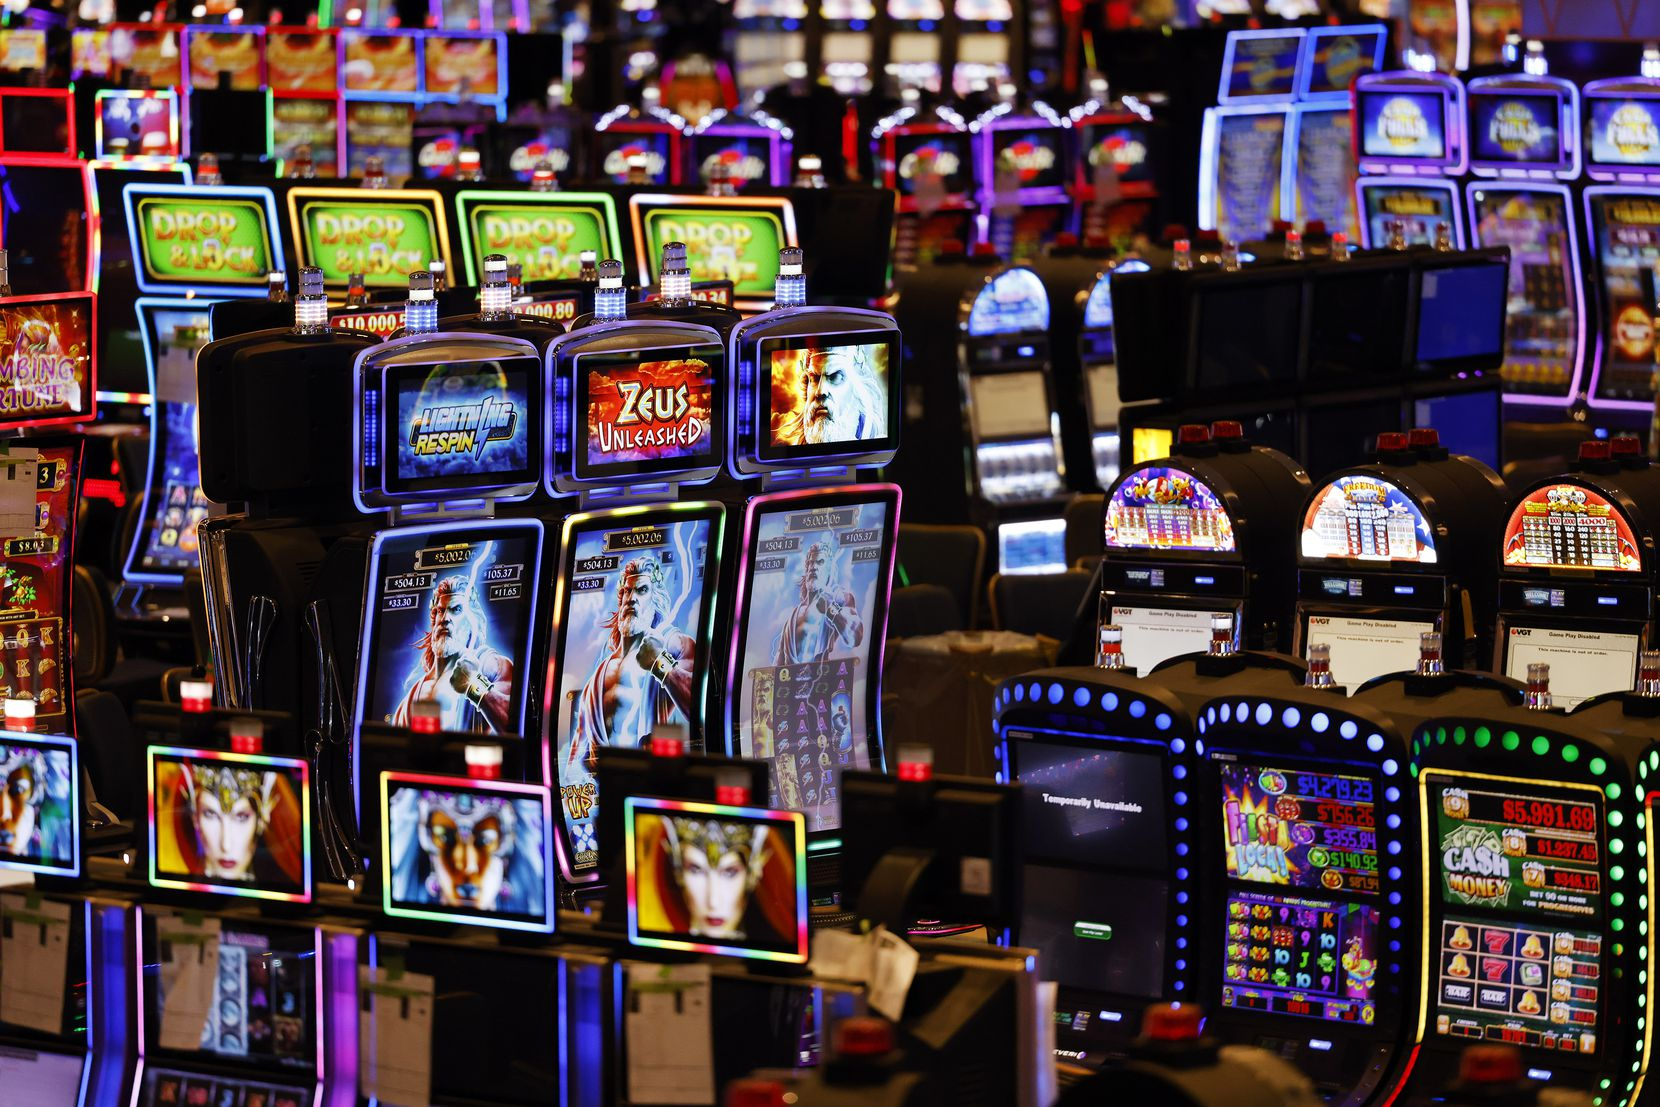 Some of the new 3,300 slot machines at Choctaw Casino and Resort's new 21-story Sky Tower complex in Durant, Okla.